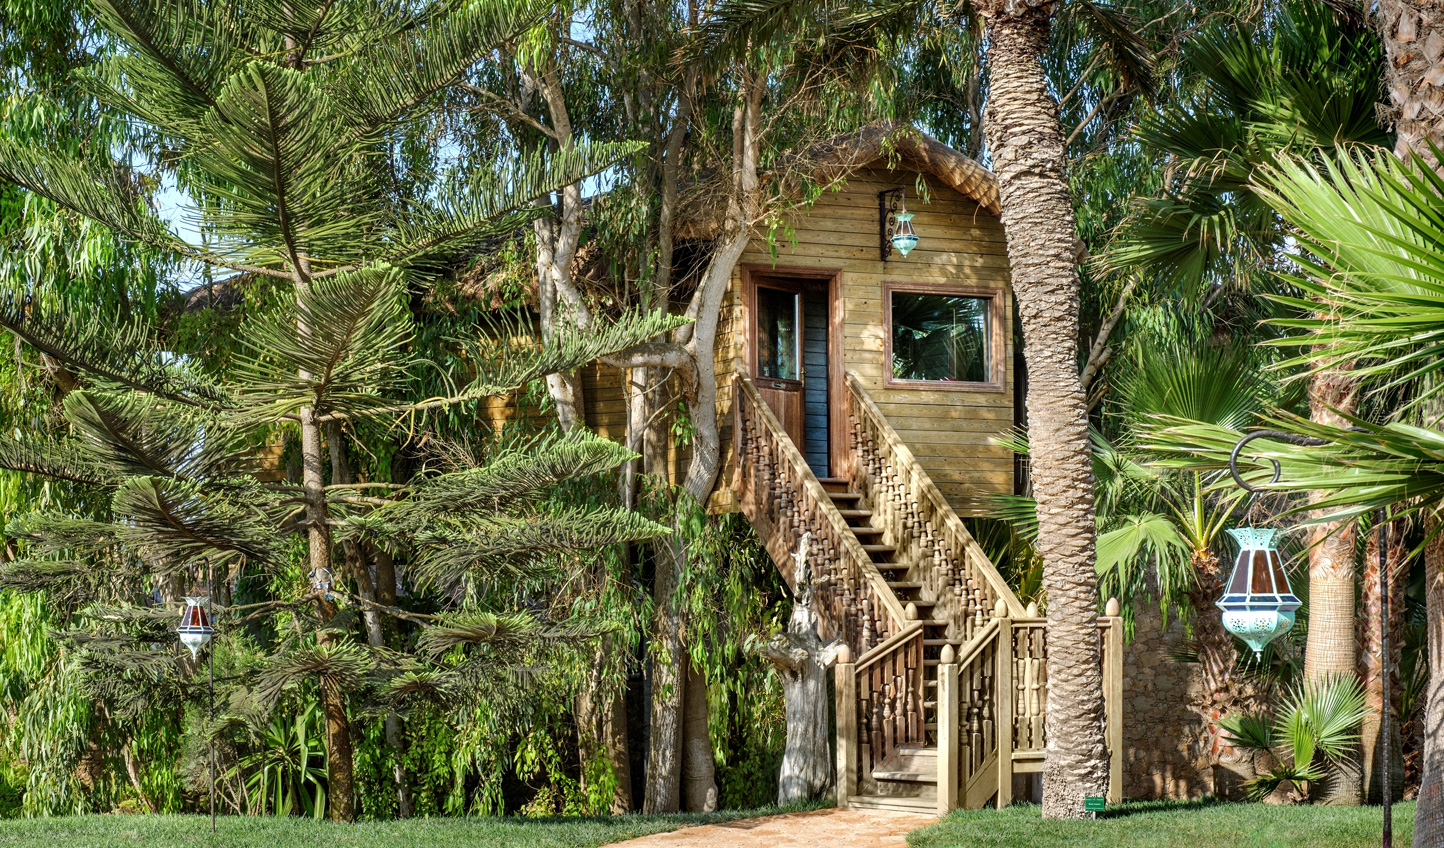 Feel at home in the treetops in a luxury treehouse